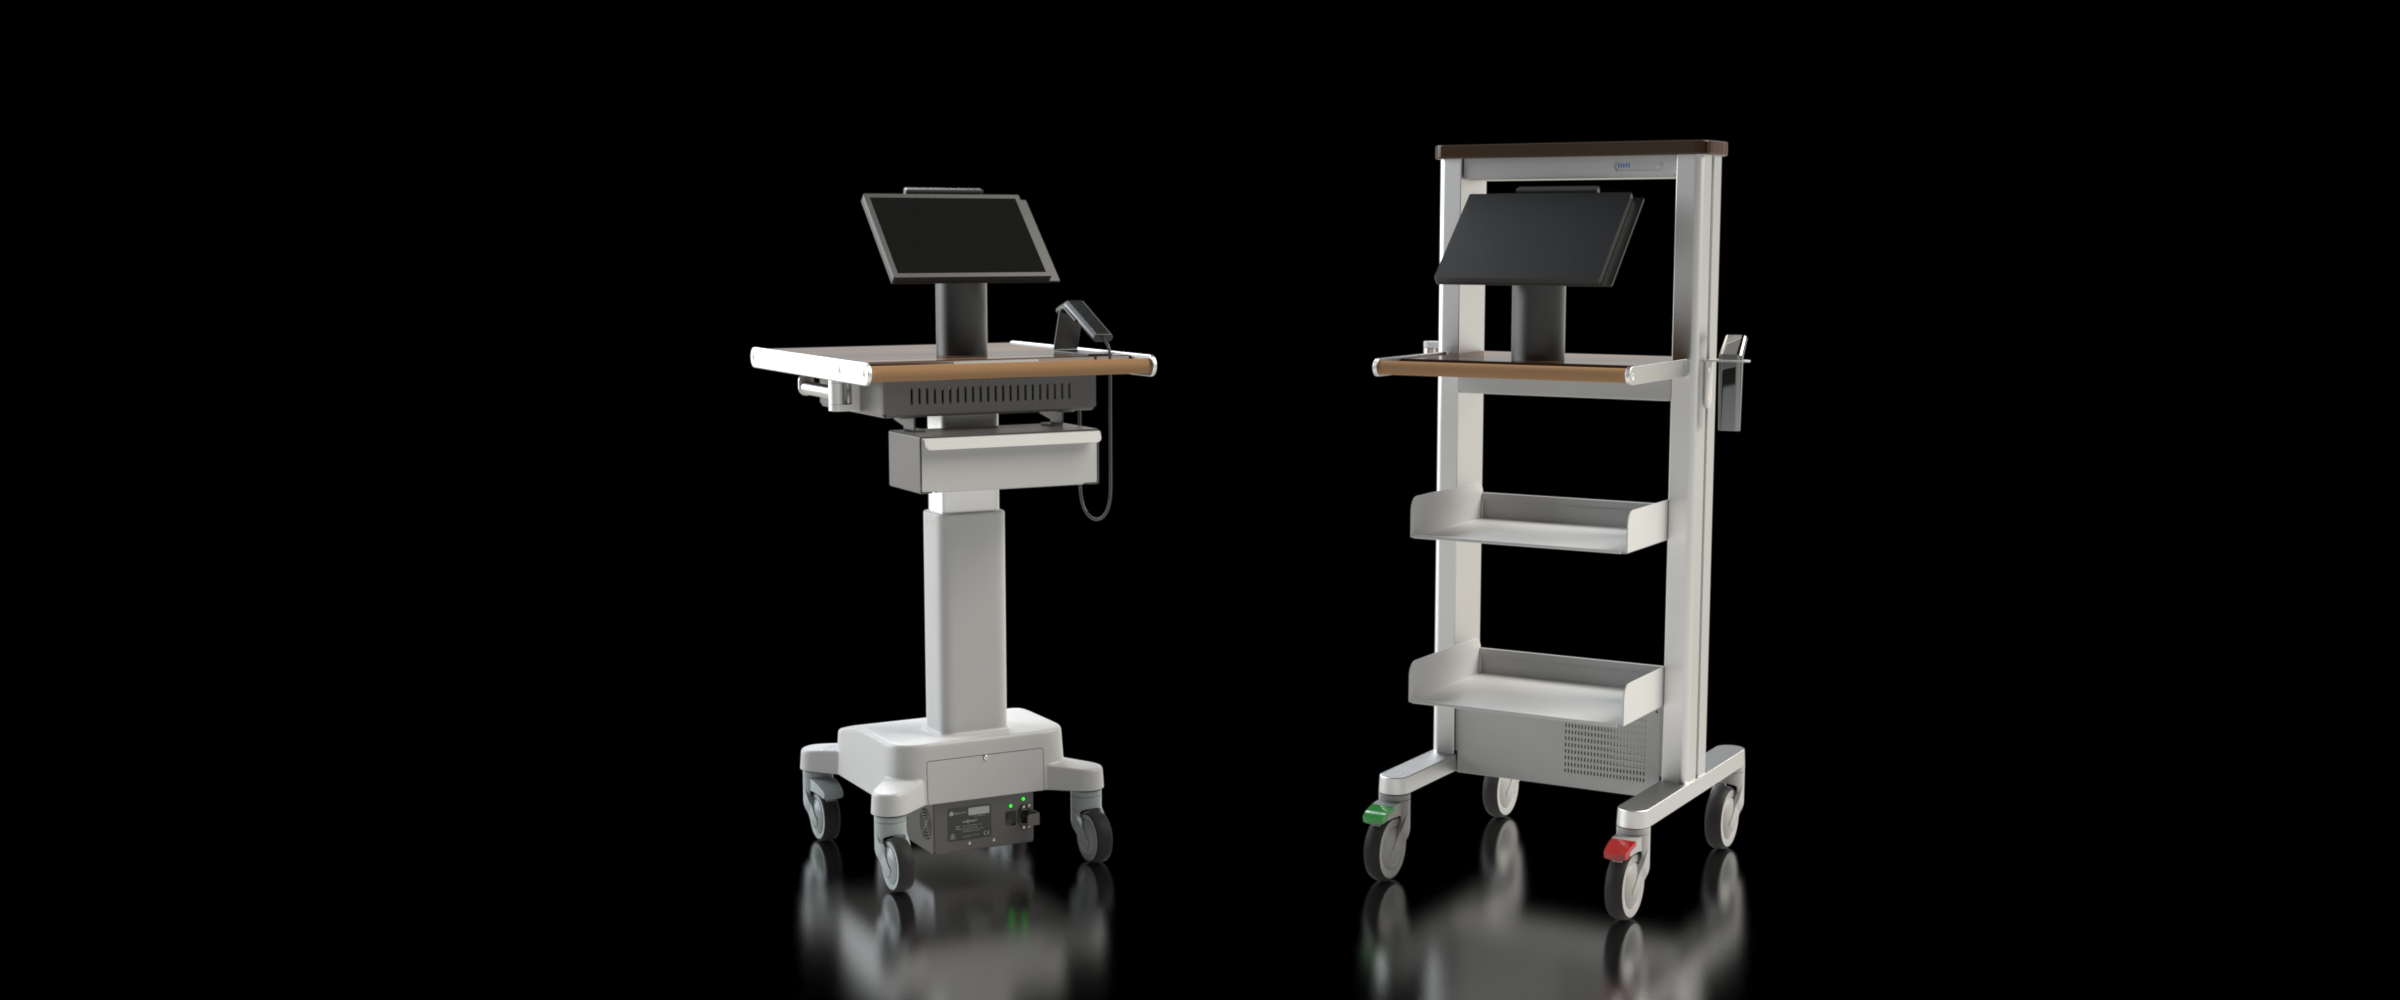 Mobile Checkout Stand